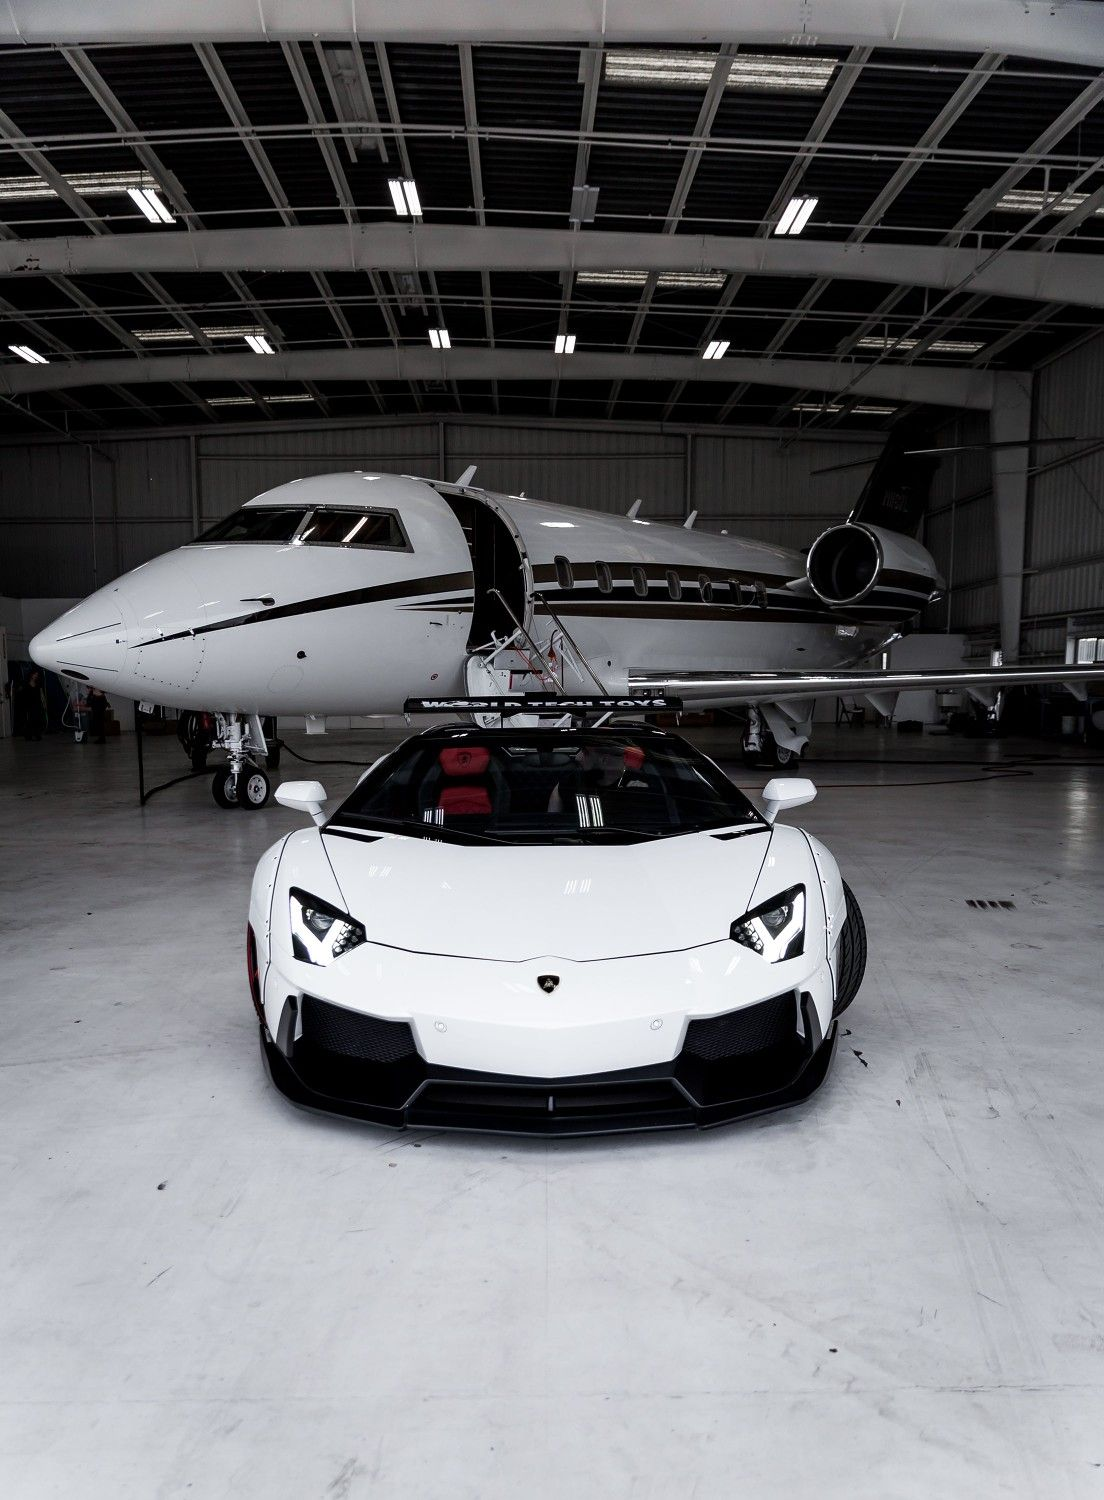 Lambo with private jet wallpaper android wallpaper